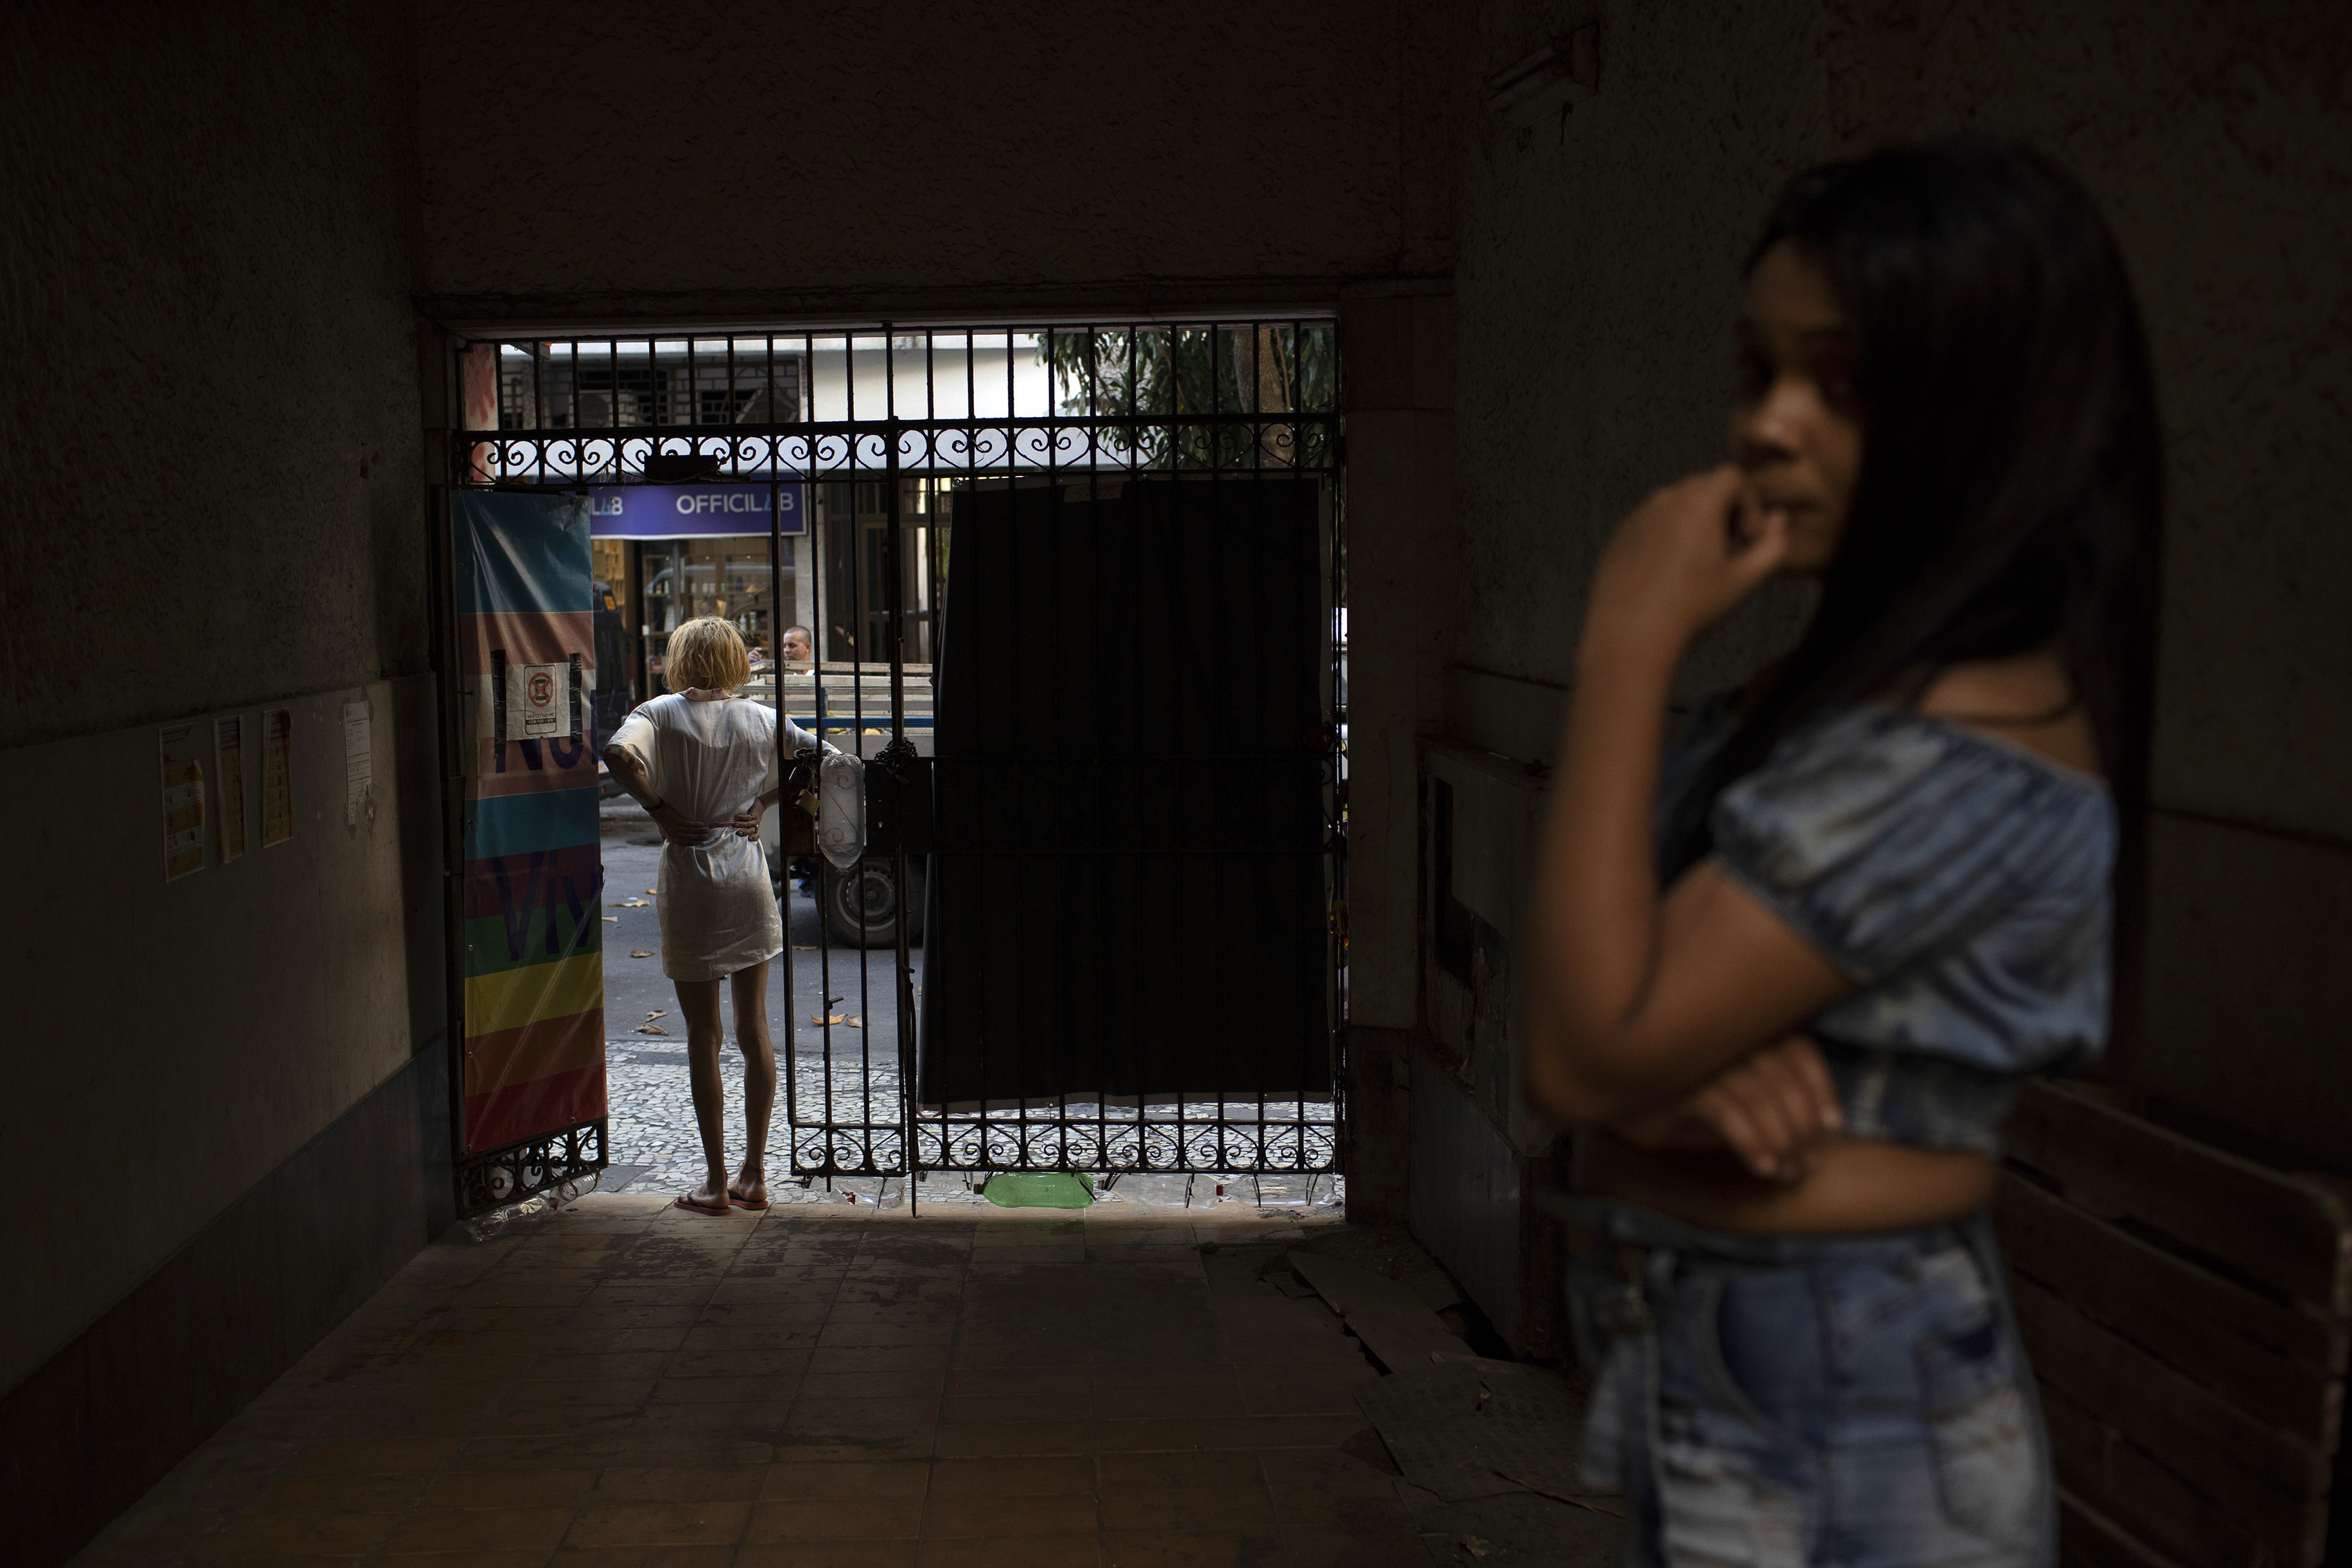 A resident of the squat Casa Nem waits at the entrance for a delivery of donated furniture, in Rio de Janeiro, Brazil, Wednesday, July 8, 2020. The six-floor building is home to members of the LGBTQ community riding out the pandemic behind closed doors.